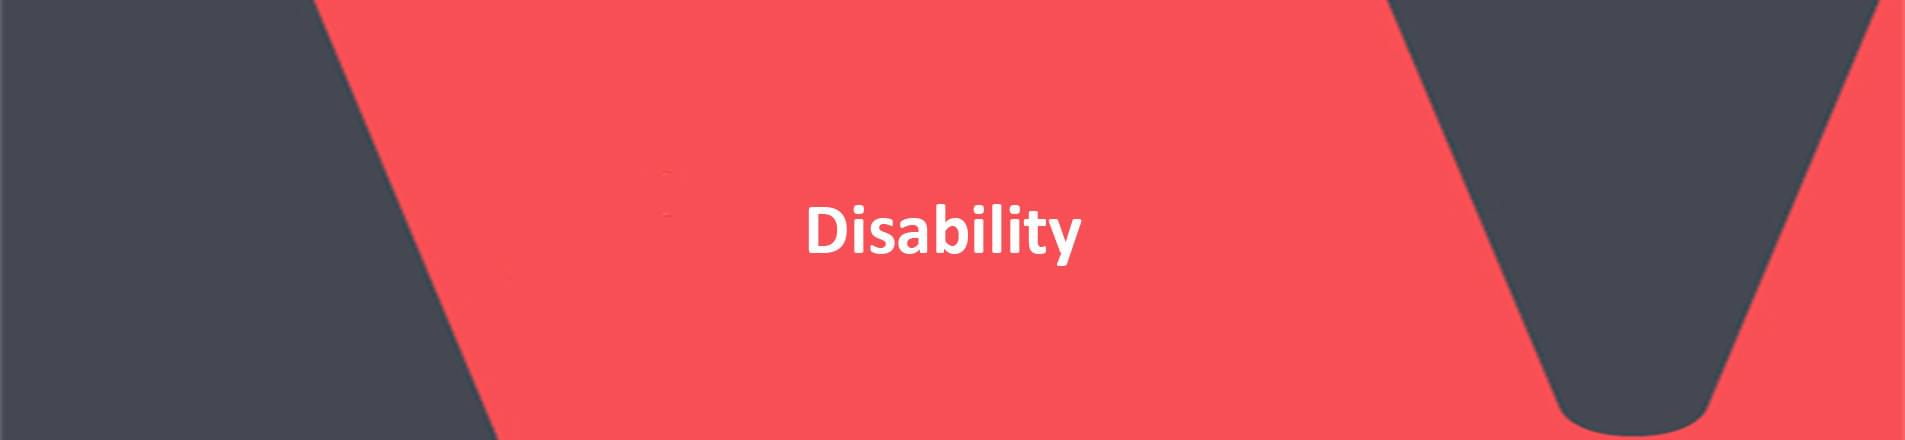 Red banner with white text spelling Disability